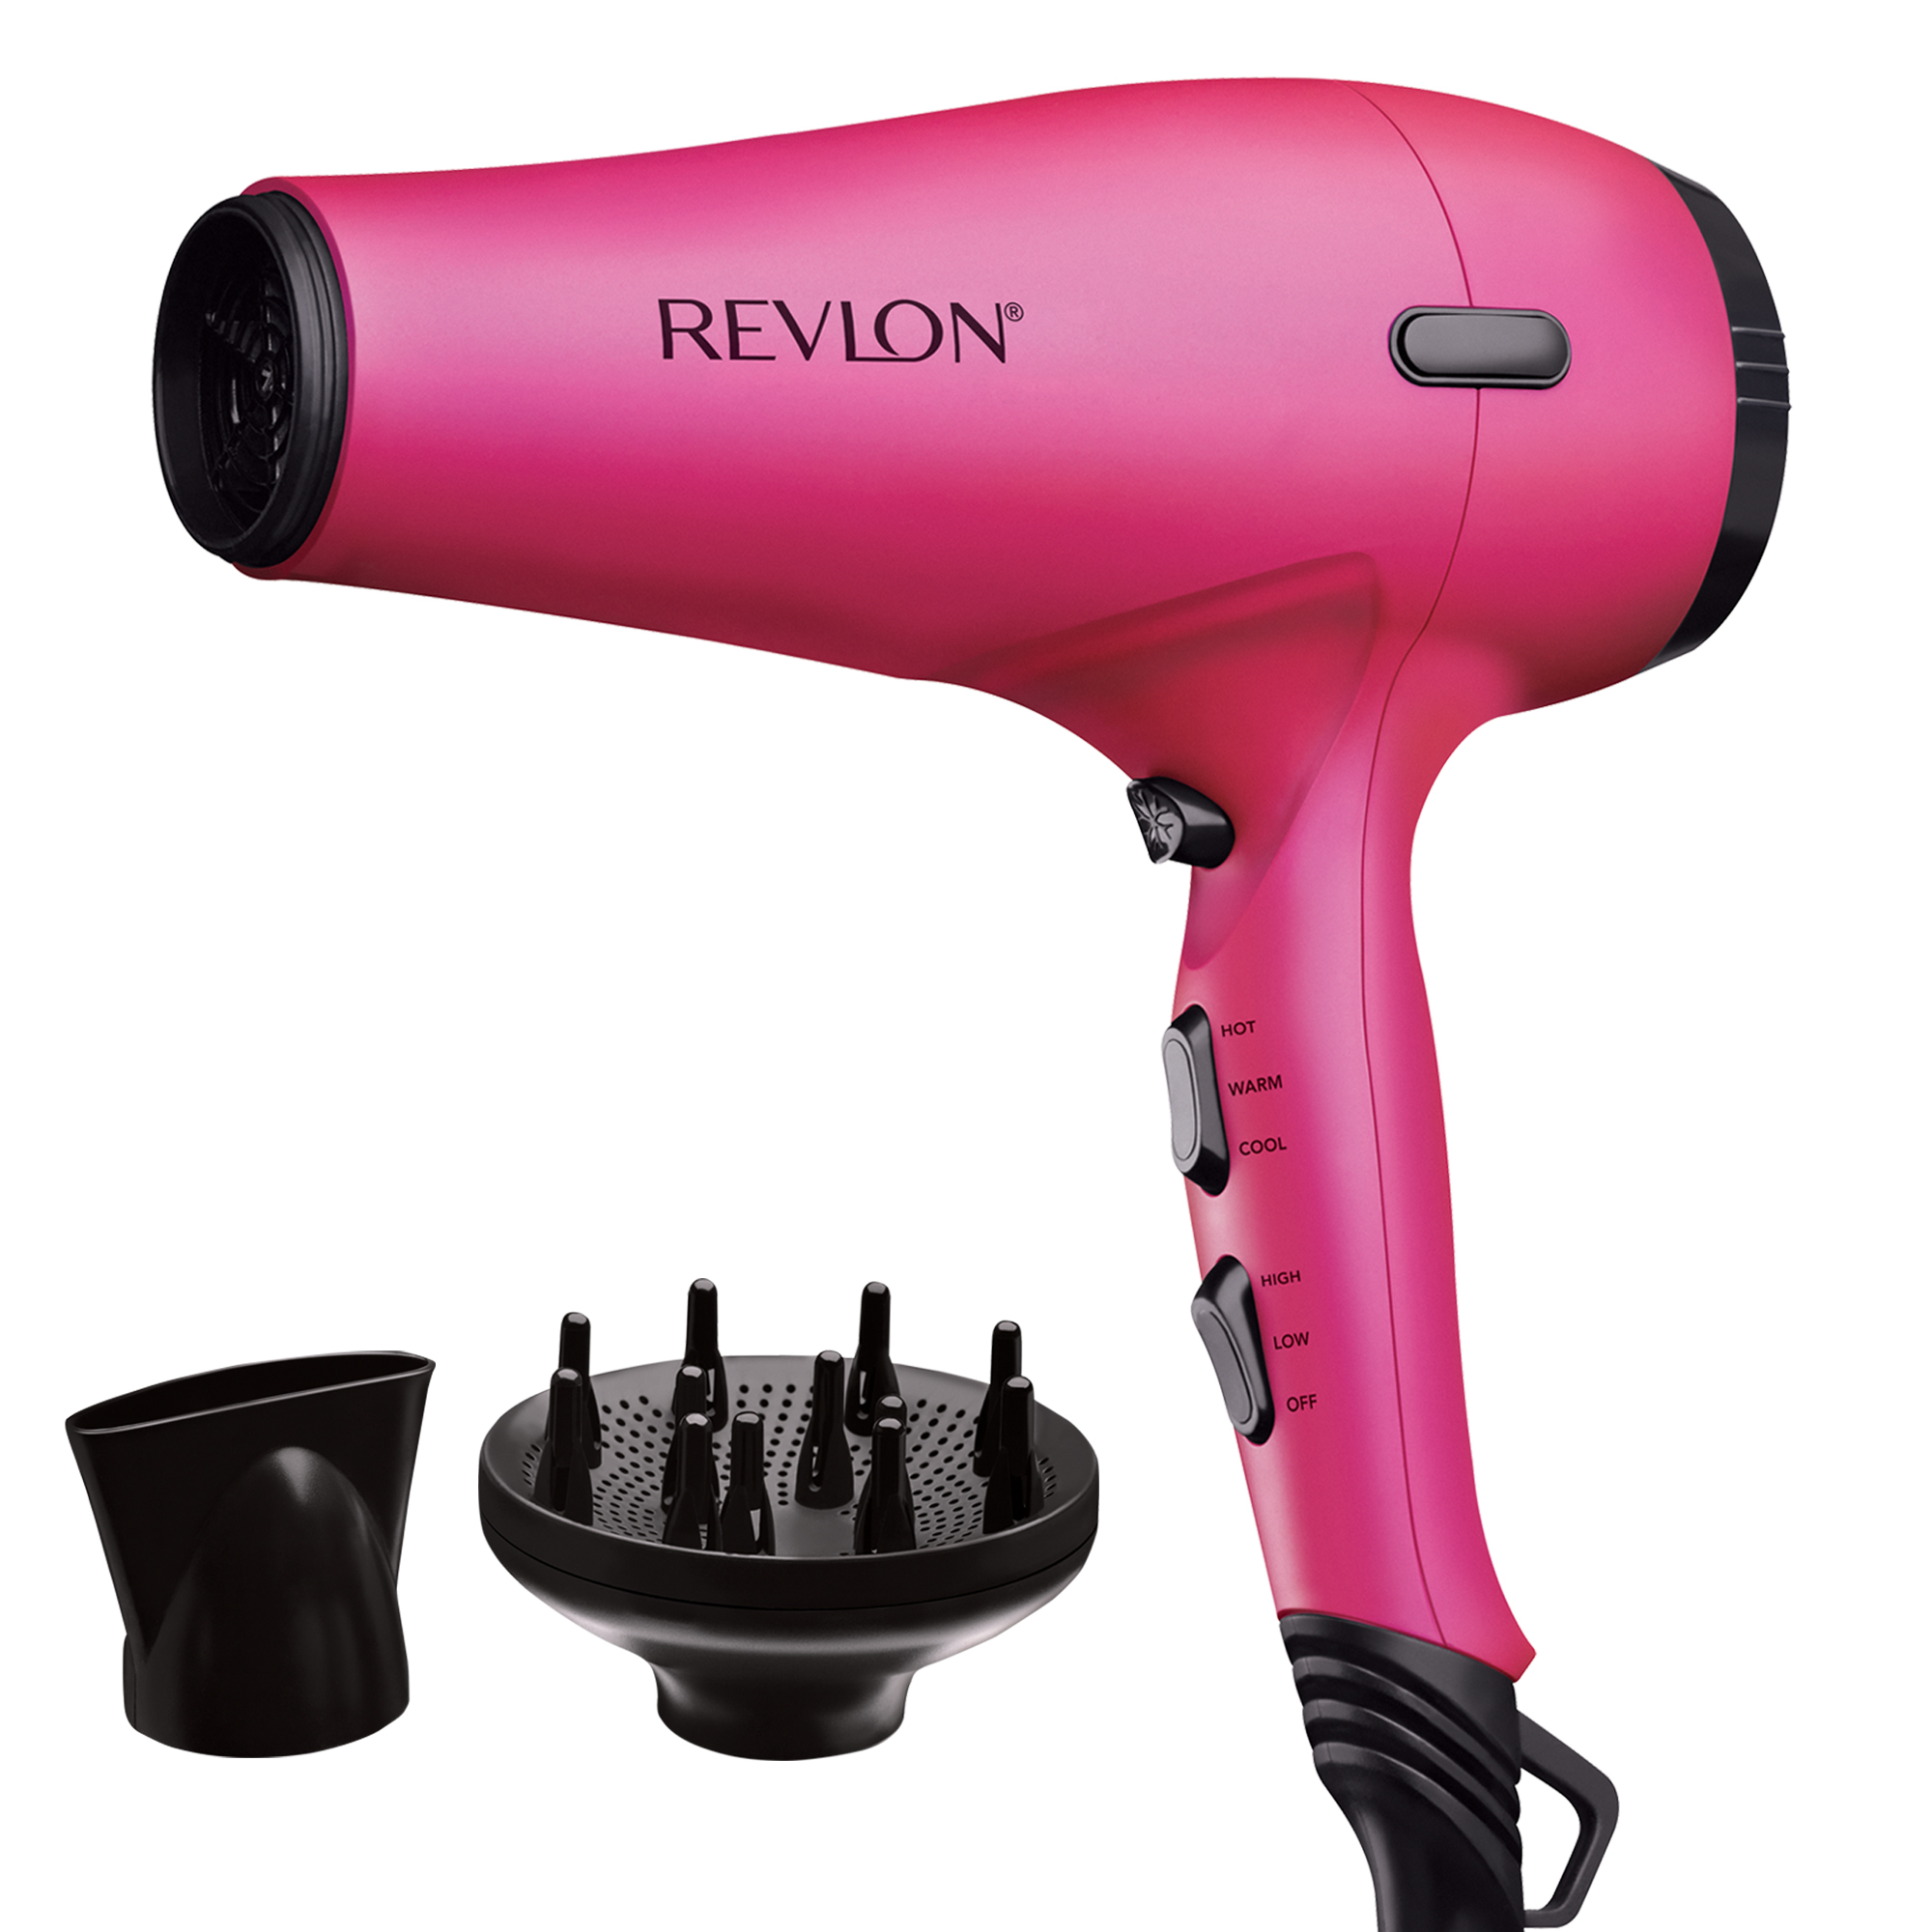 Revlon Pro Collection Fast Style RVDR5141PNK 1875W Tourmaline AC Motor Hair Dryer, Pink